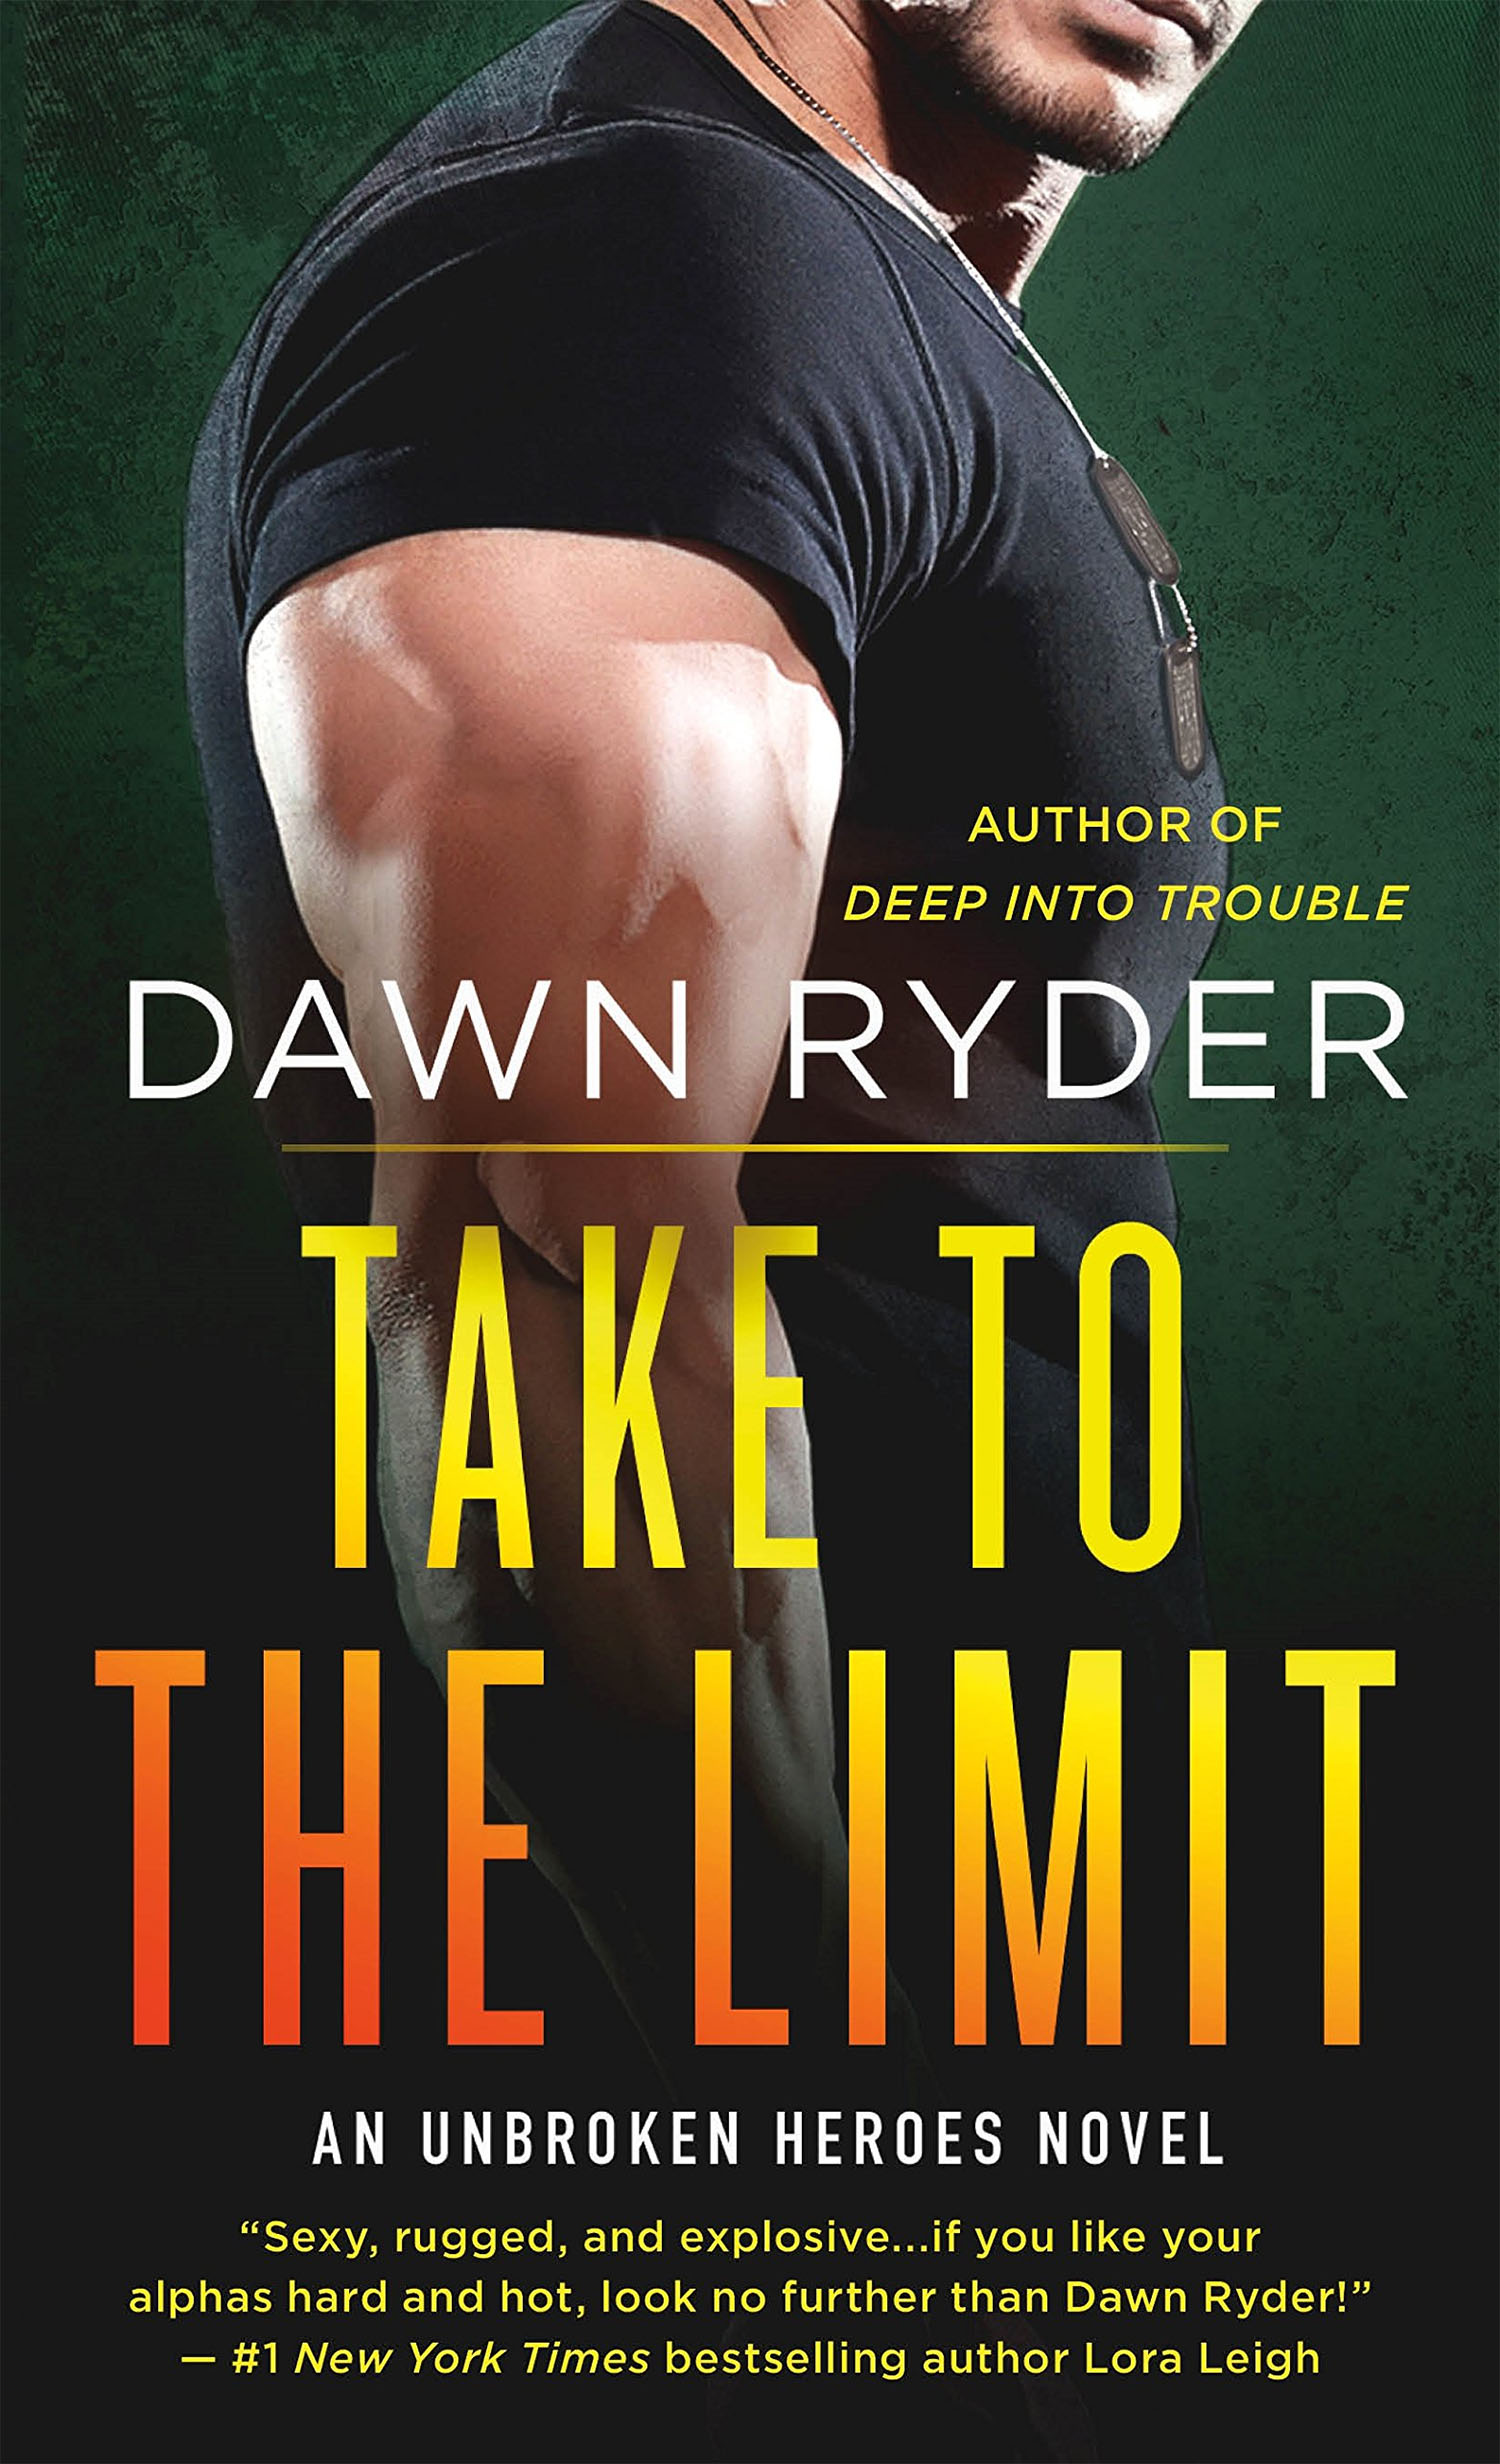 Take to the Limit by Dawn Ryder